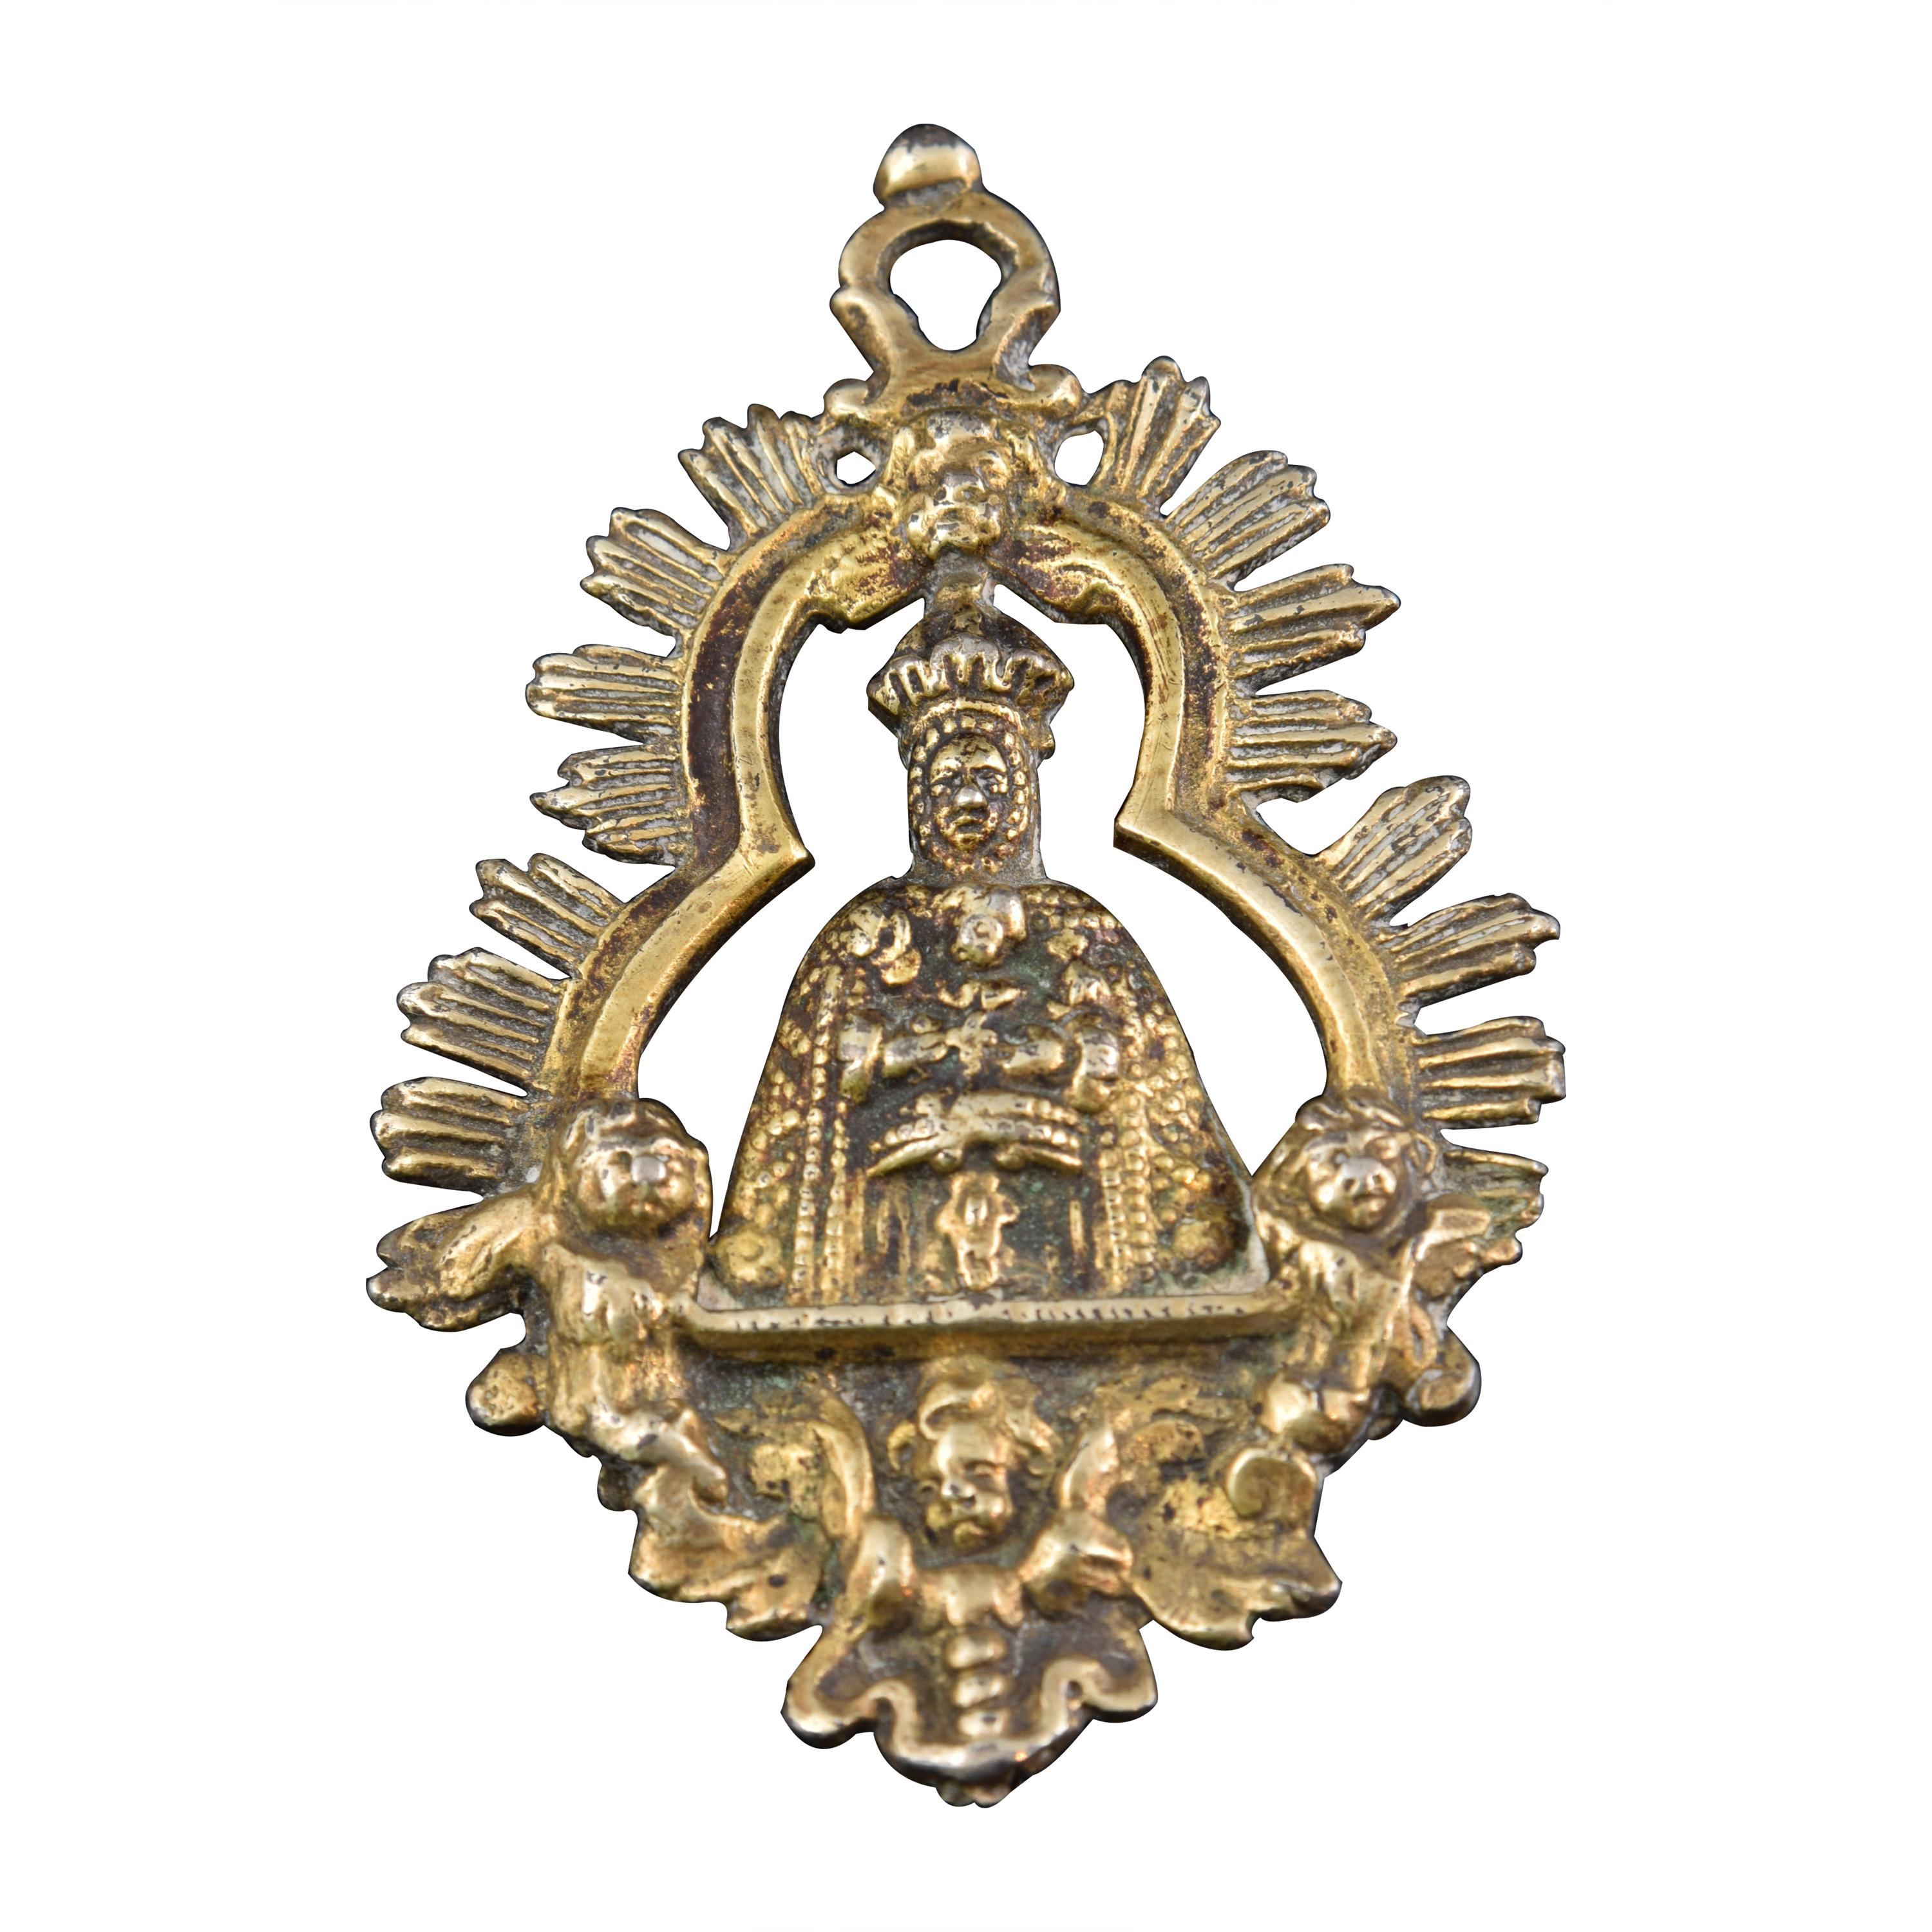 Virgin with Child, Devotional Medal or Pendant. Spain, 18th Century